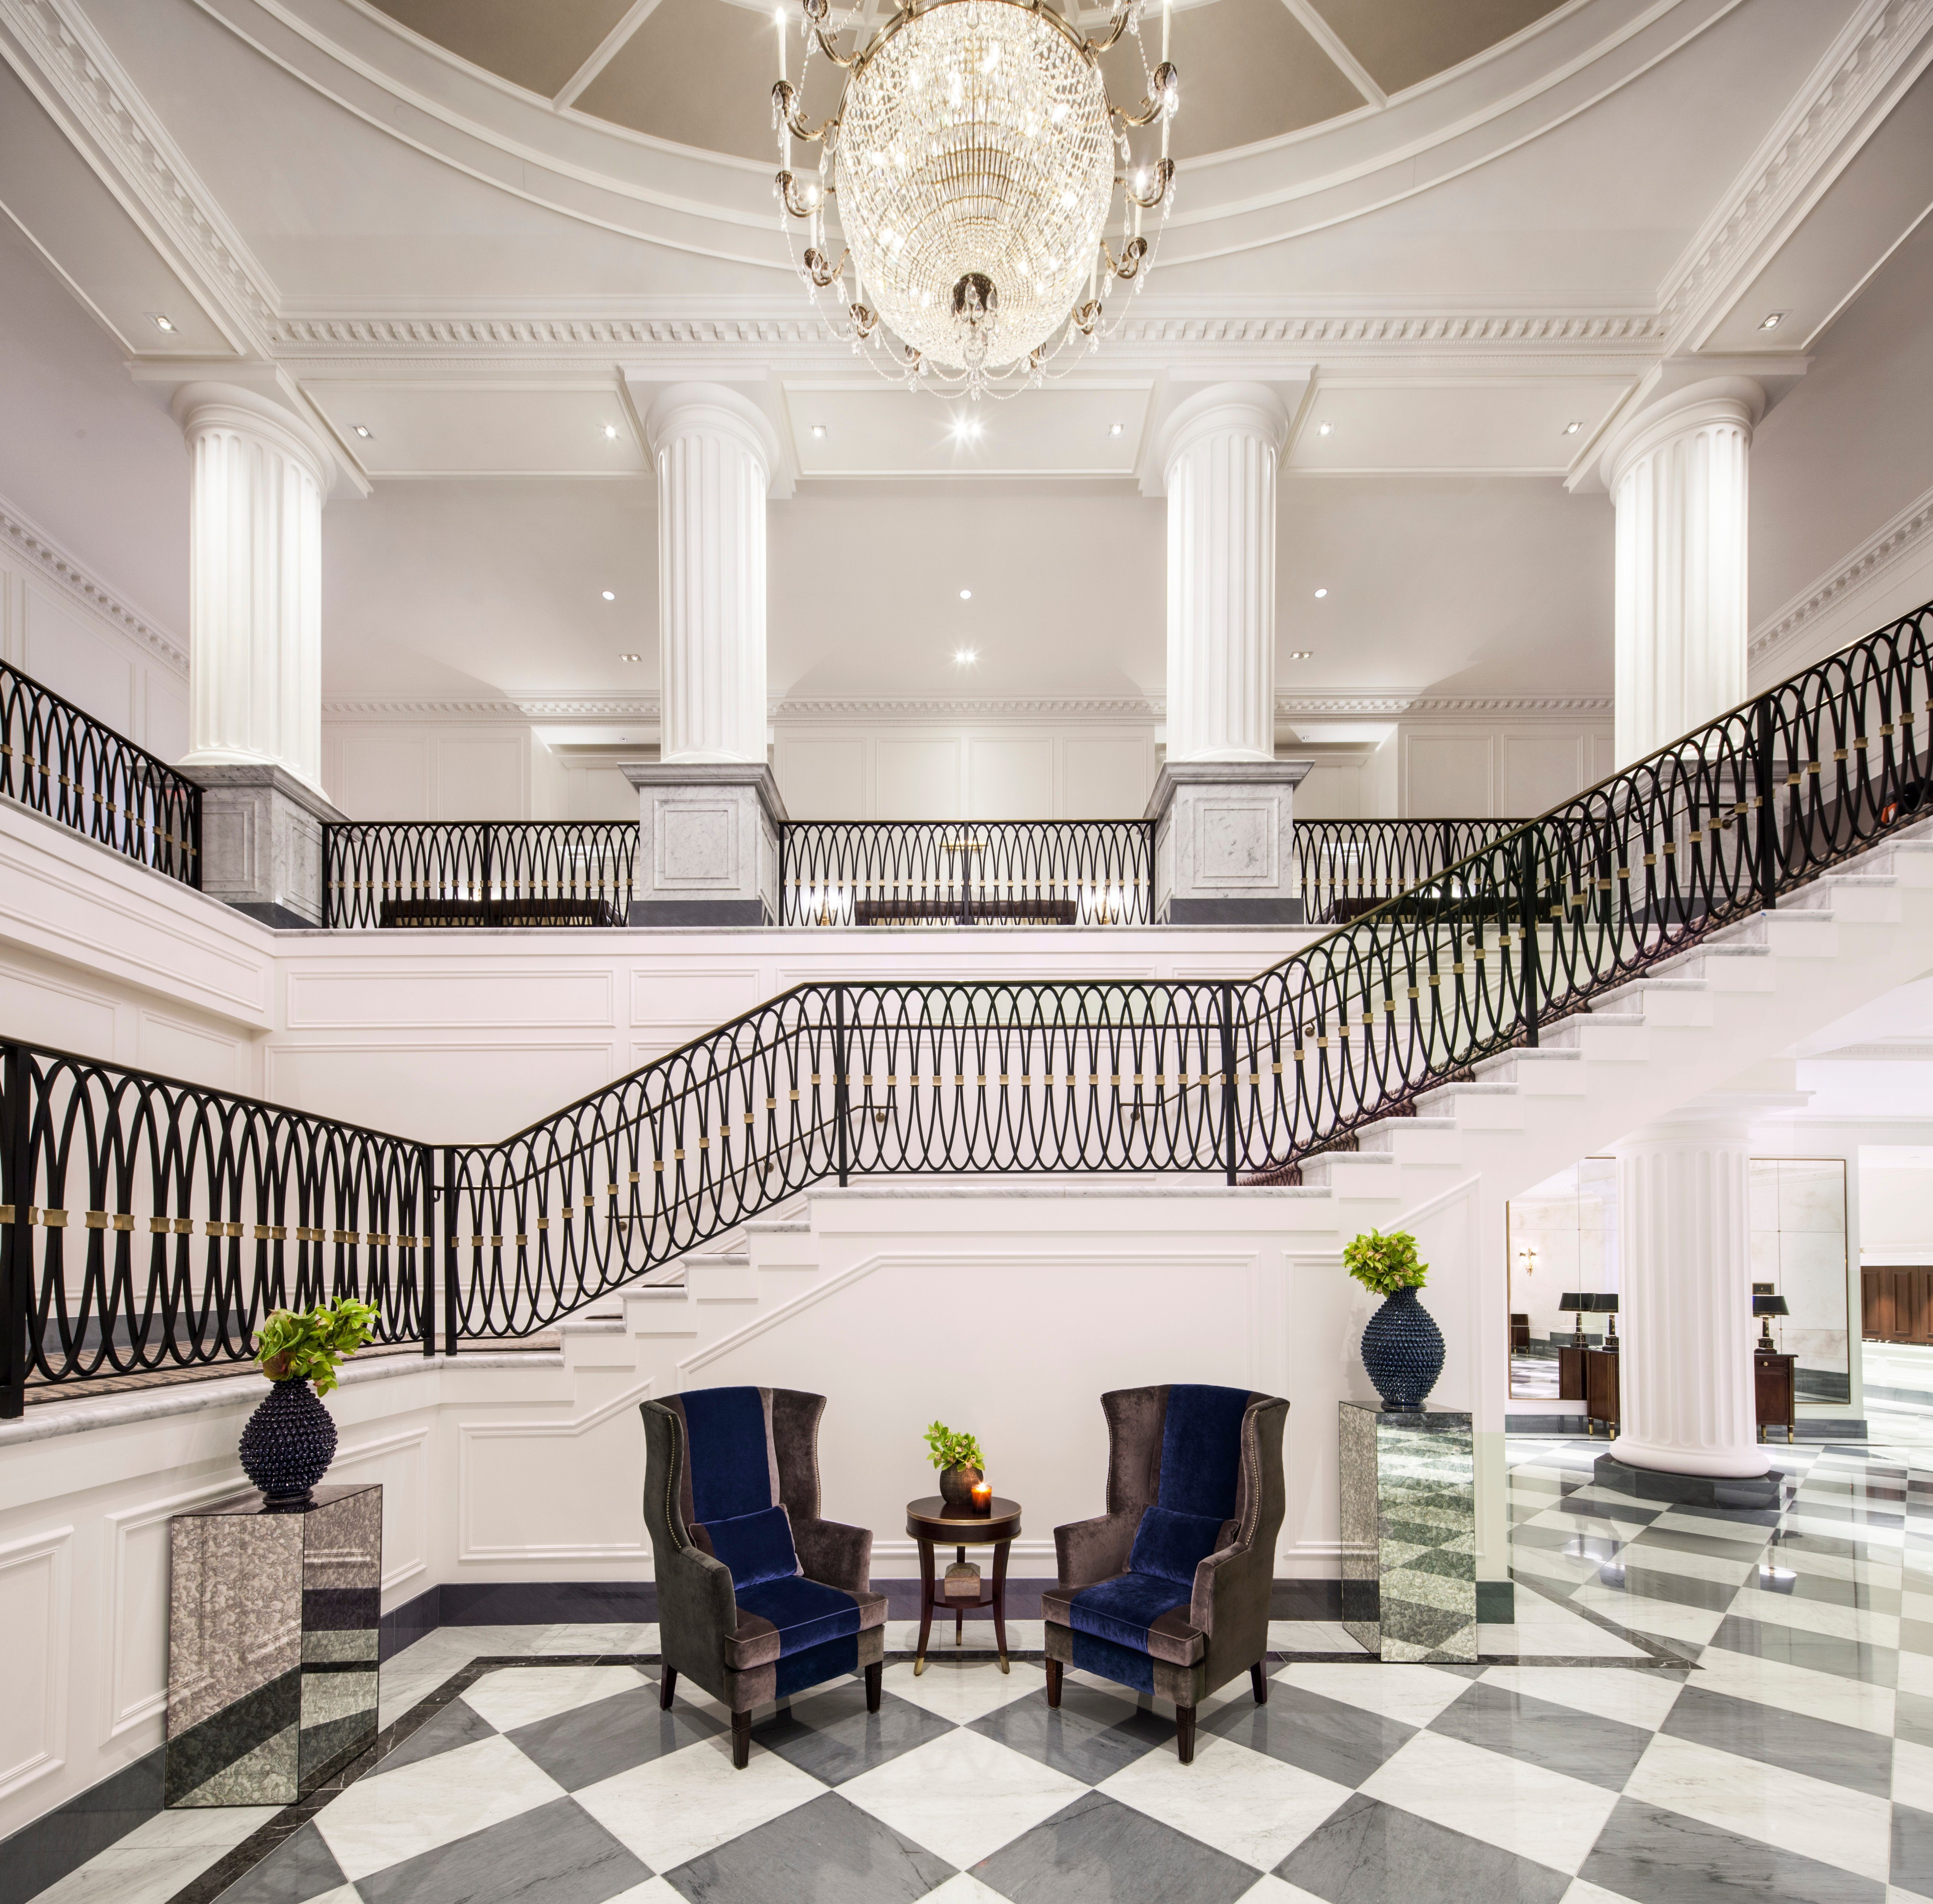 How 180 Million Transformed The Intercontinental New York Barclay Hotel Management